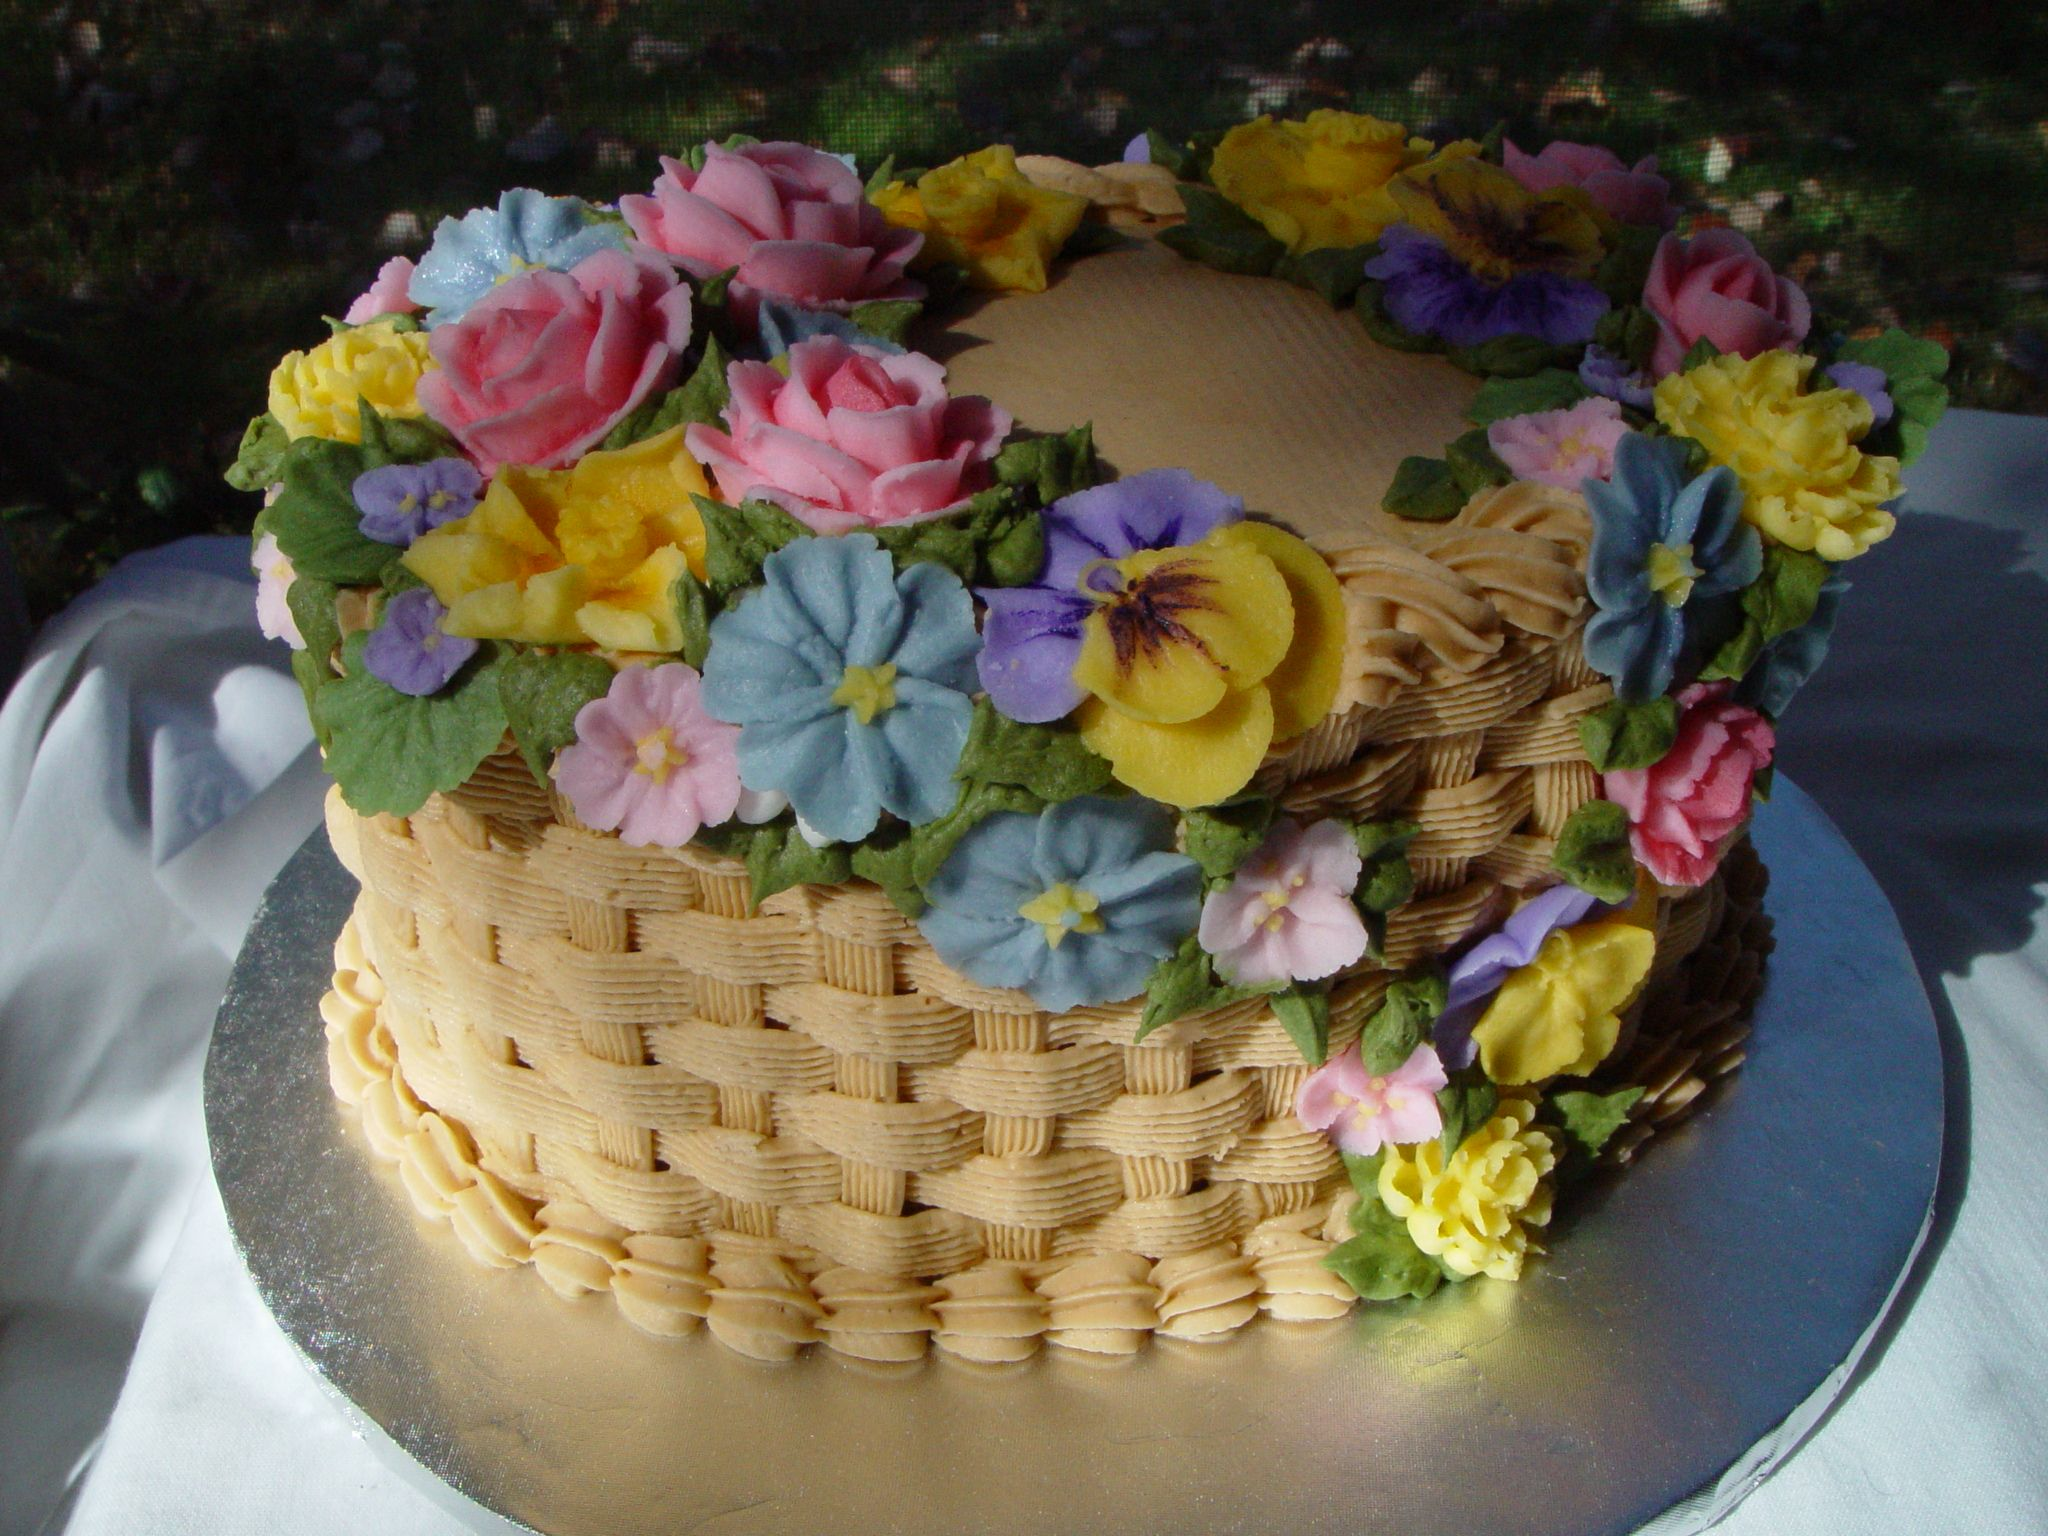 Birthday Cake Images And Flowers ~ Buttercream decorated birthday cakes cake with buttercream